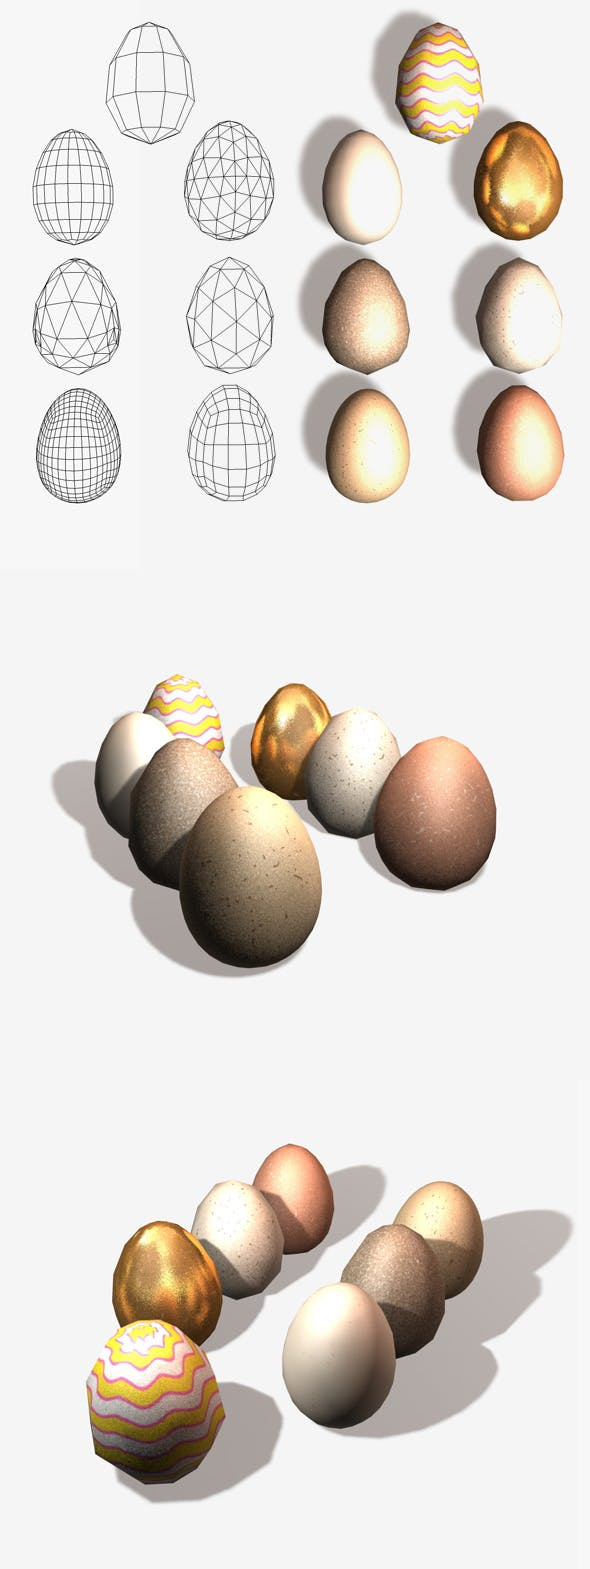 7 Eggs Low and High Poly - 3DOcean Item for Sale